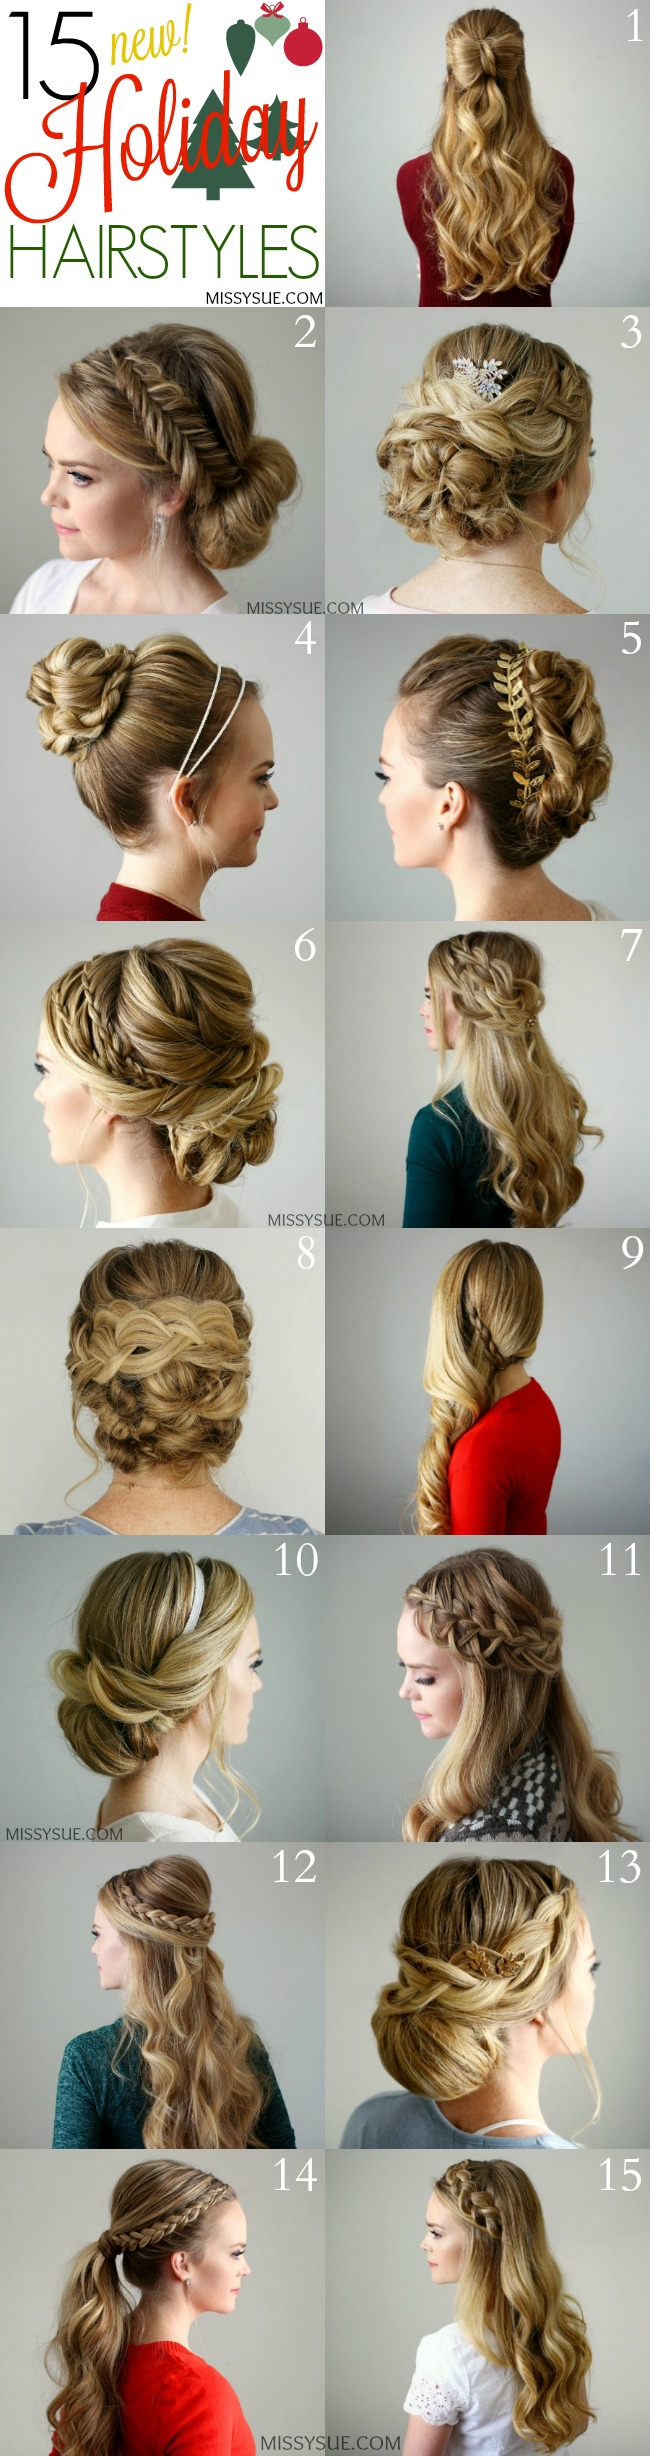 15 Holiday Hairstyles Missy Sue